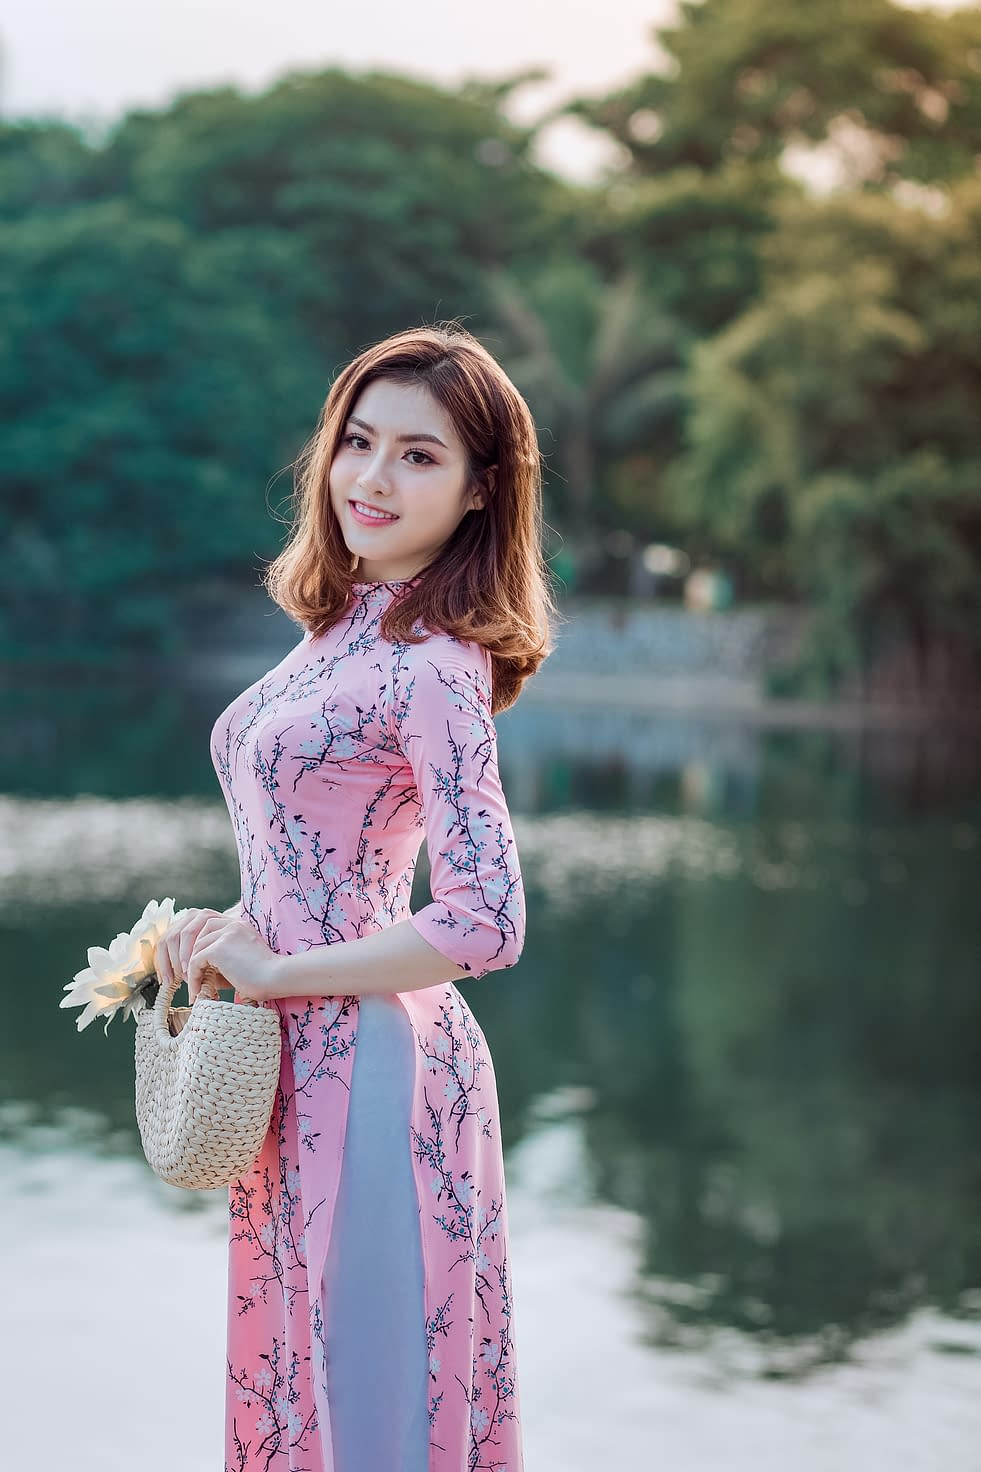 chinese girl in pink dress